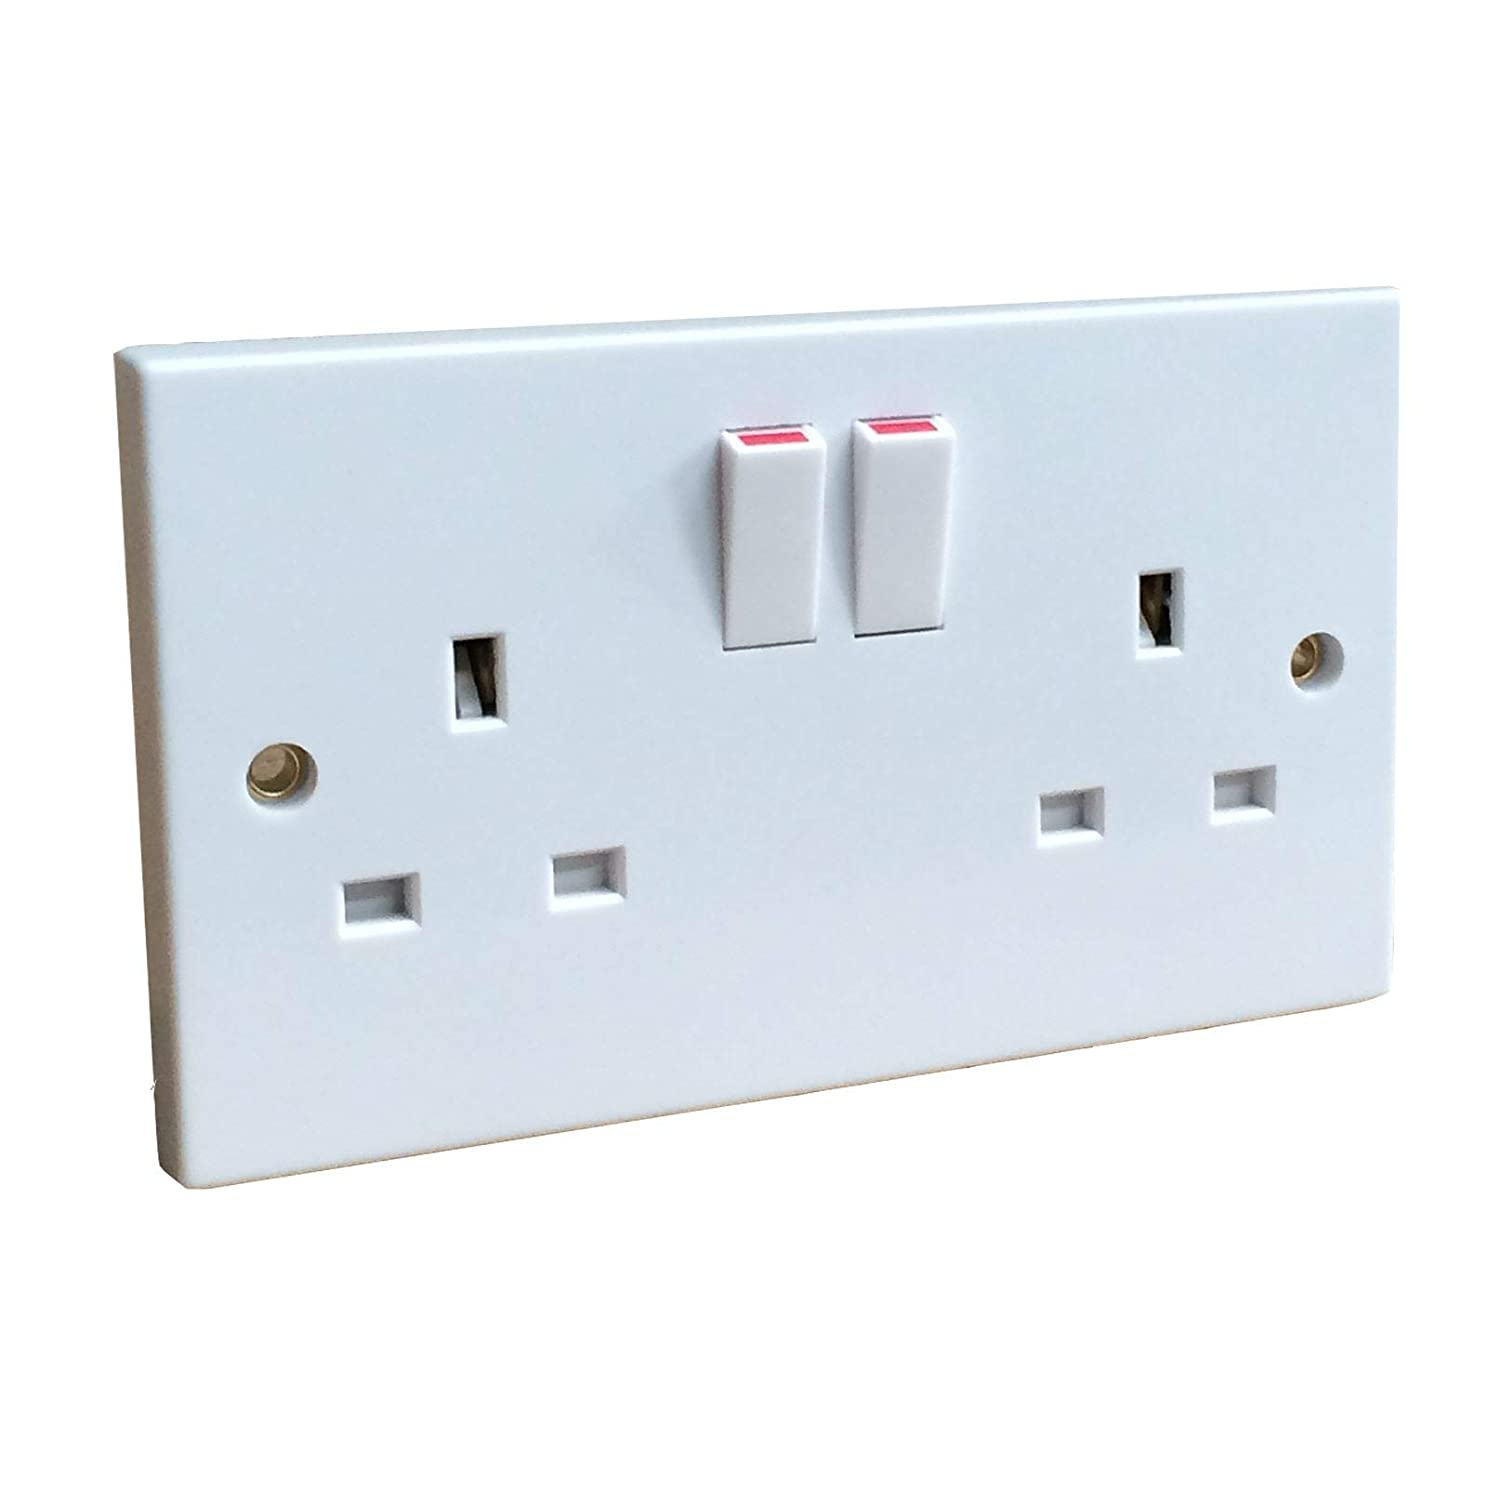 Twin 2 Gang Switched Plug Electrical by RED//GREY Double Wall Socket /& Back Box Pattress